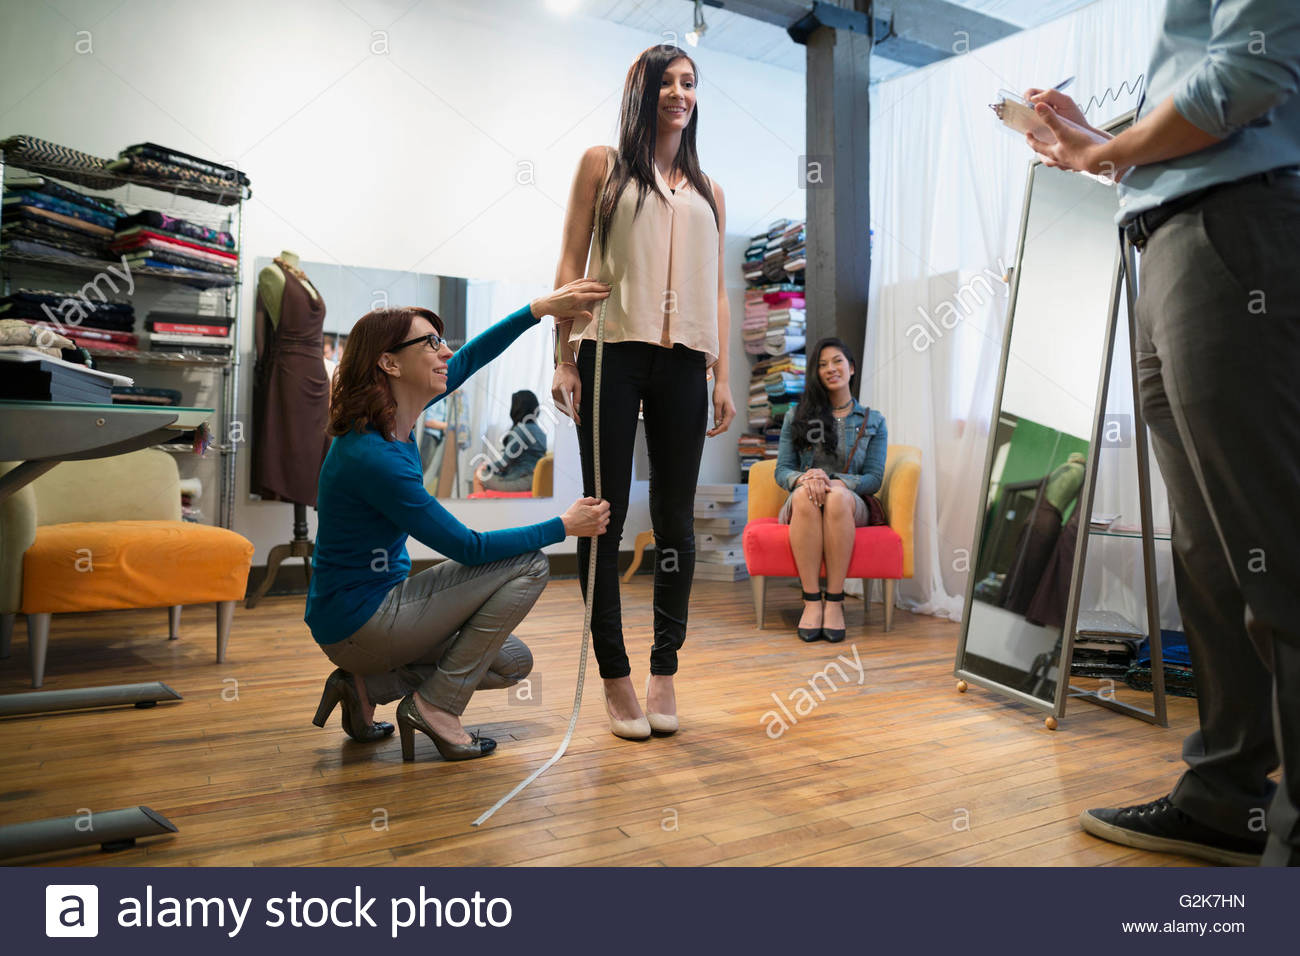 Dressmaker measuring woman - Stock Image